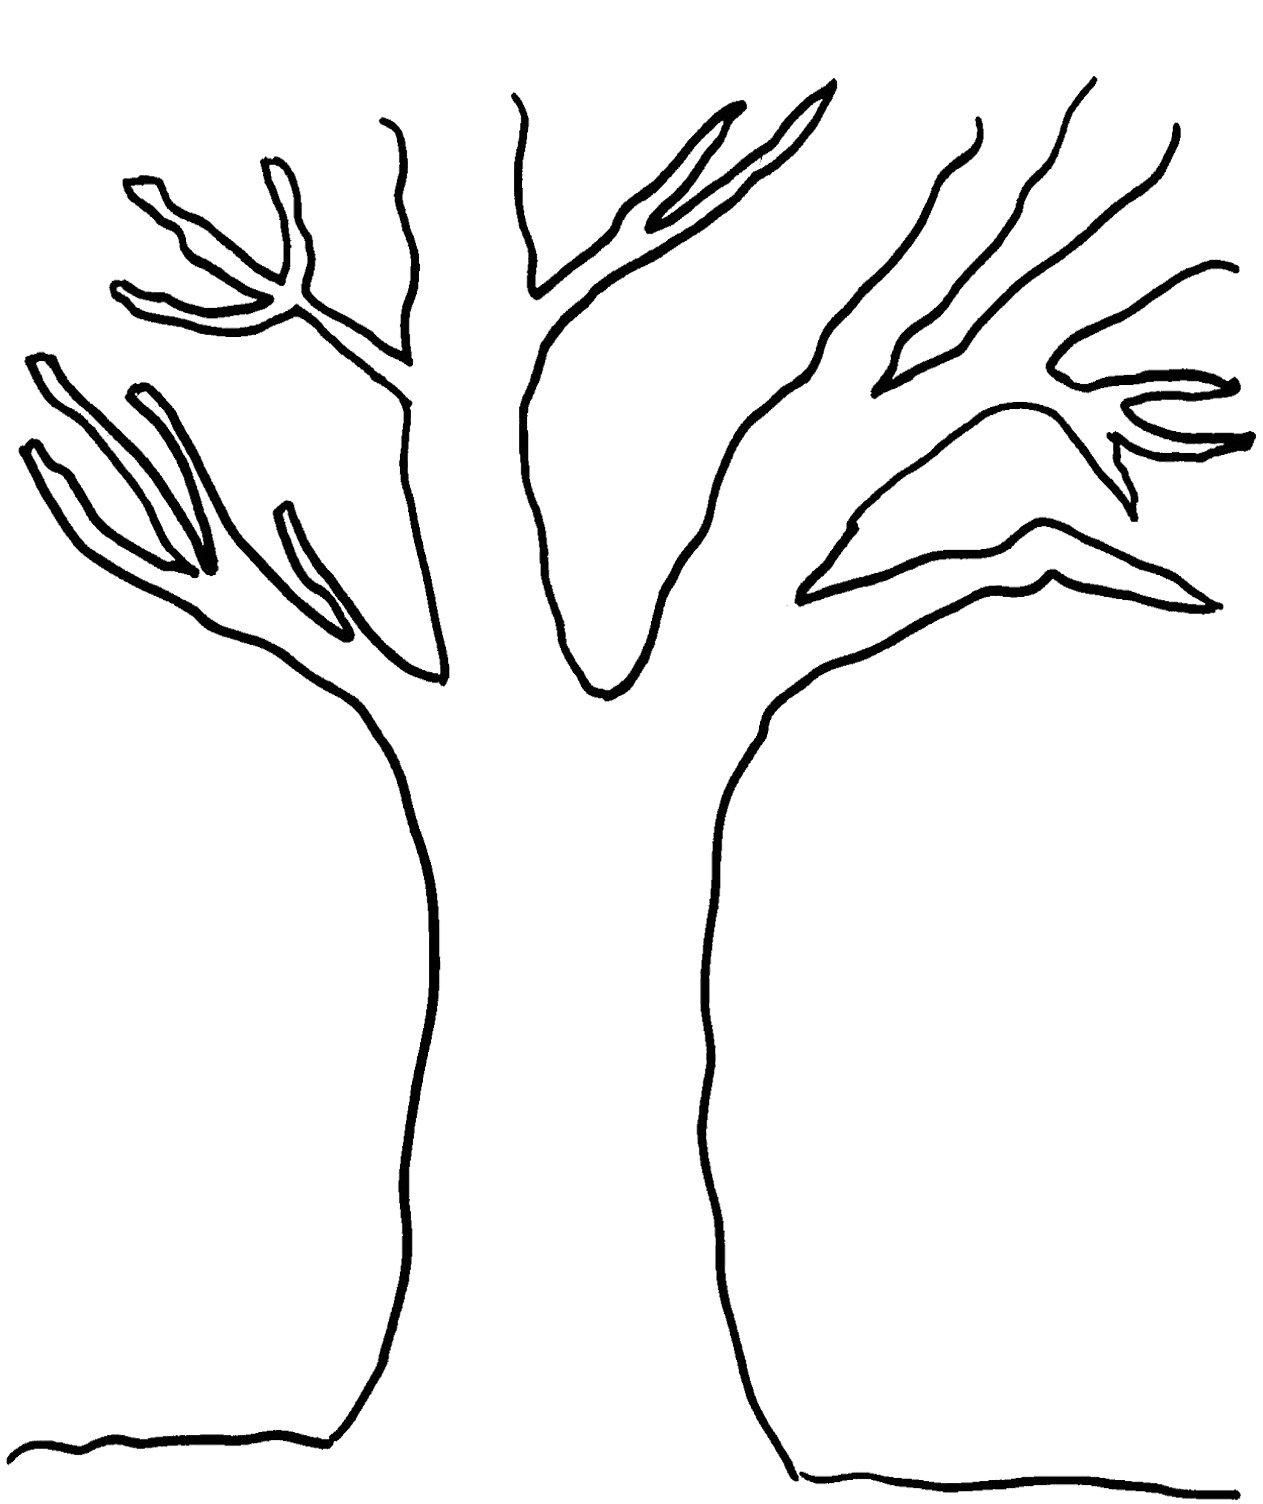 Comprehensive image for tree outline printable